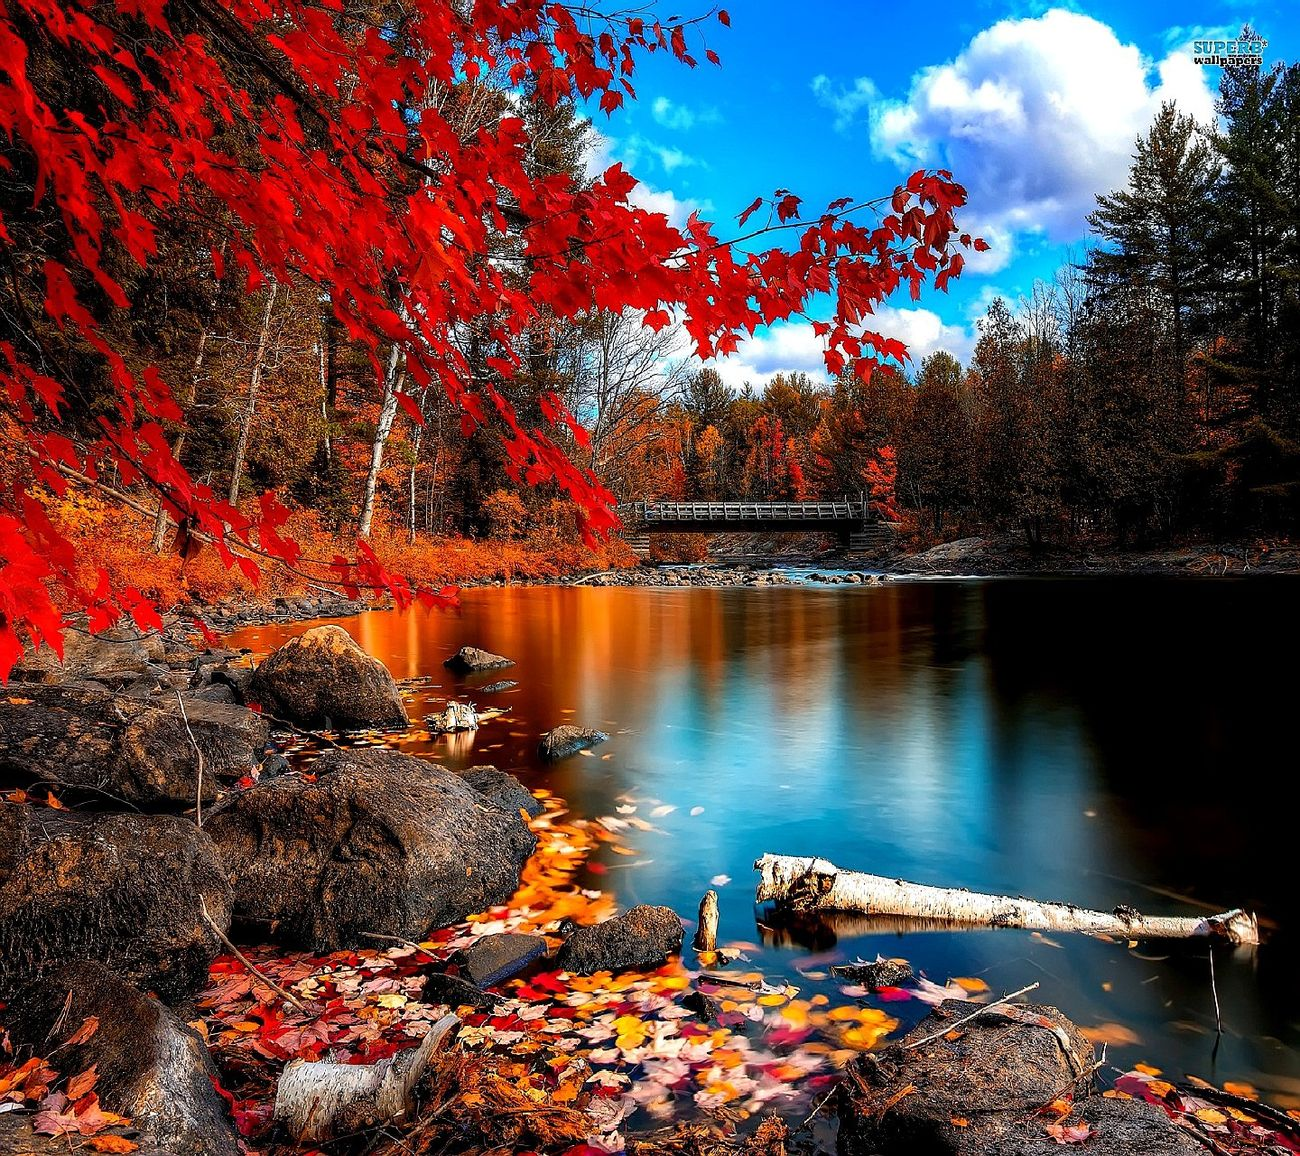 Autumn Leaves Have Fallen, Winter Is Approachinleaves